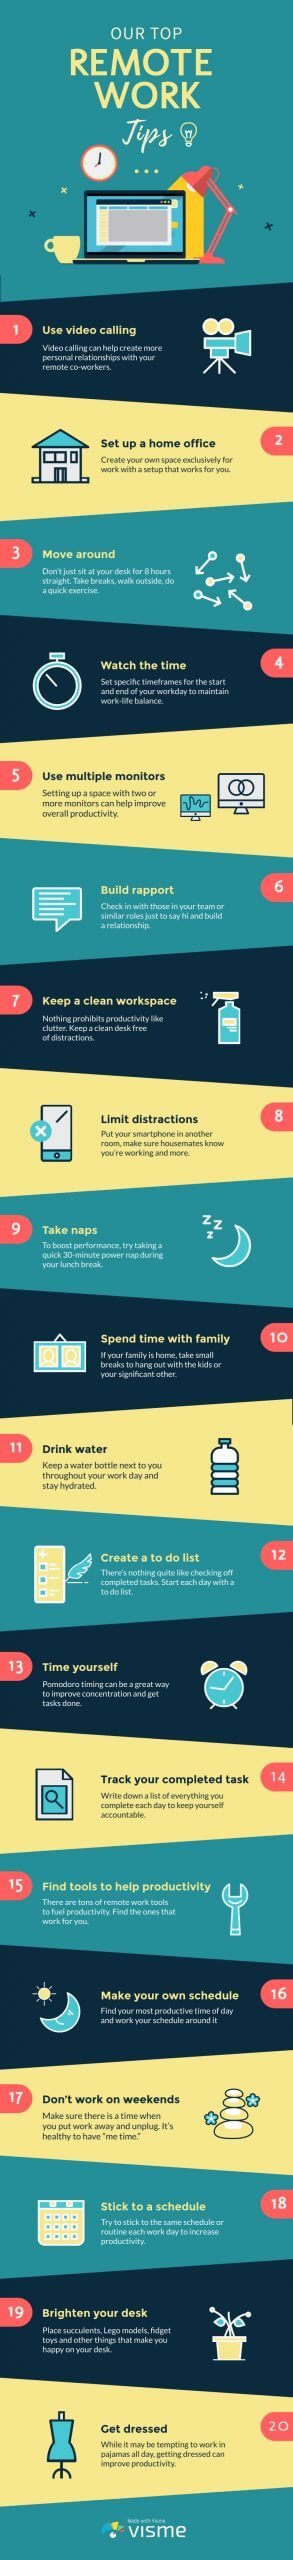 Tips for Working from Home Infographic.